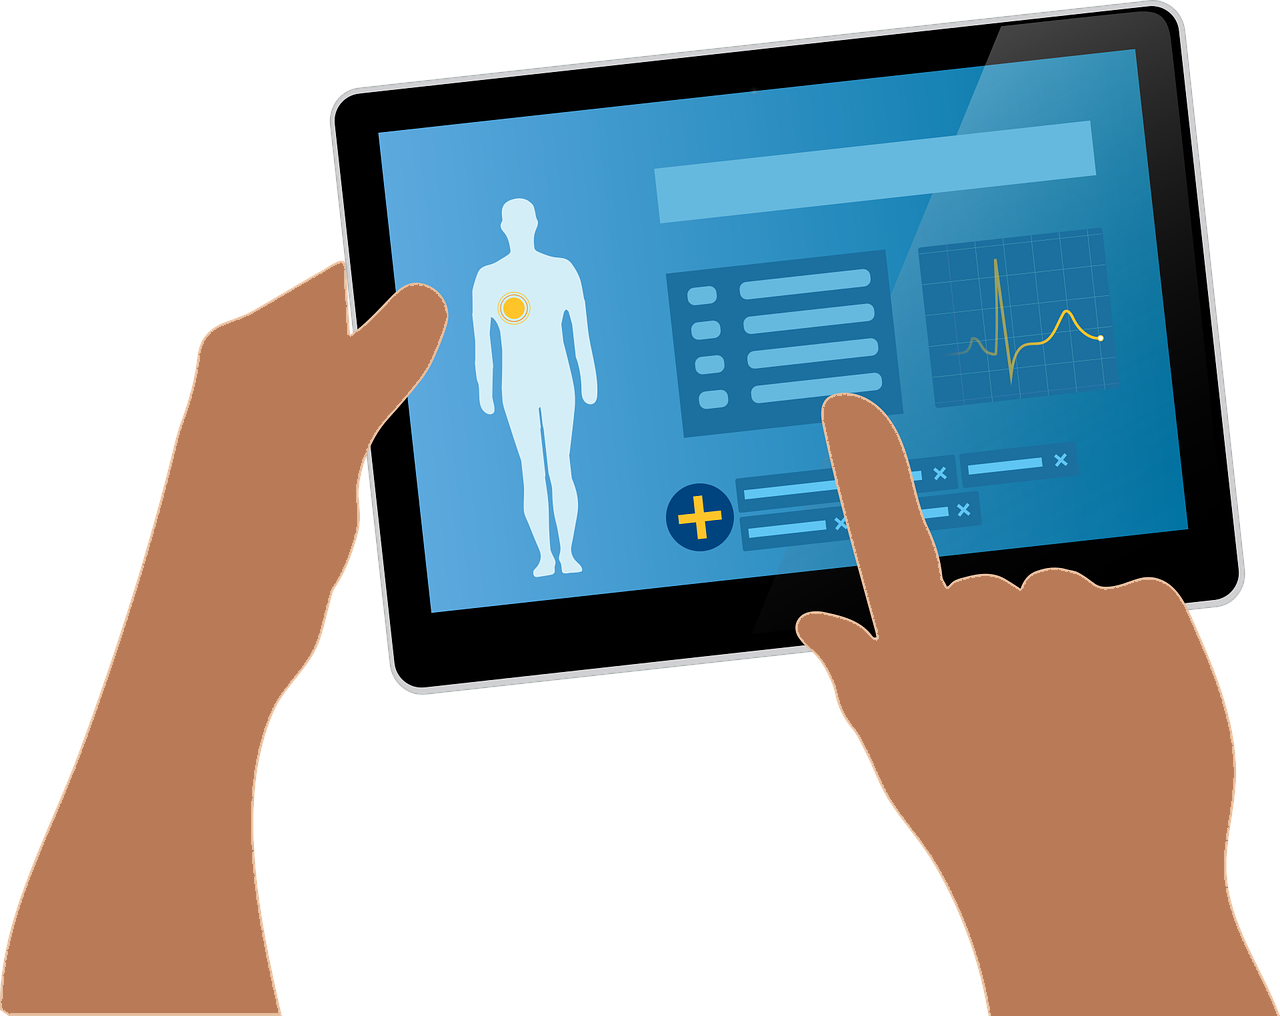 Illustration of someone holding a tablet that displays a health record